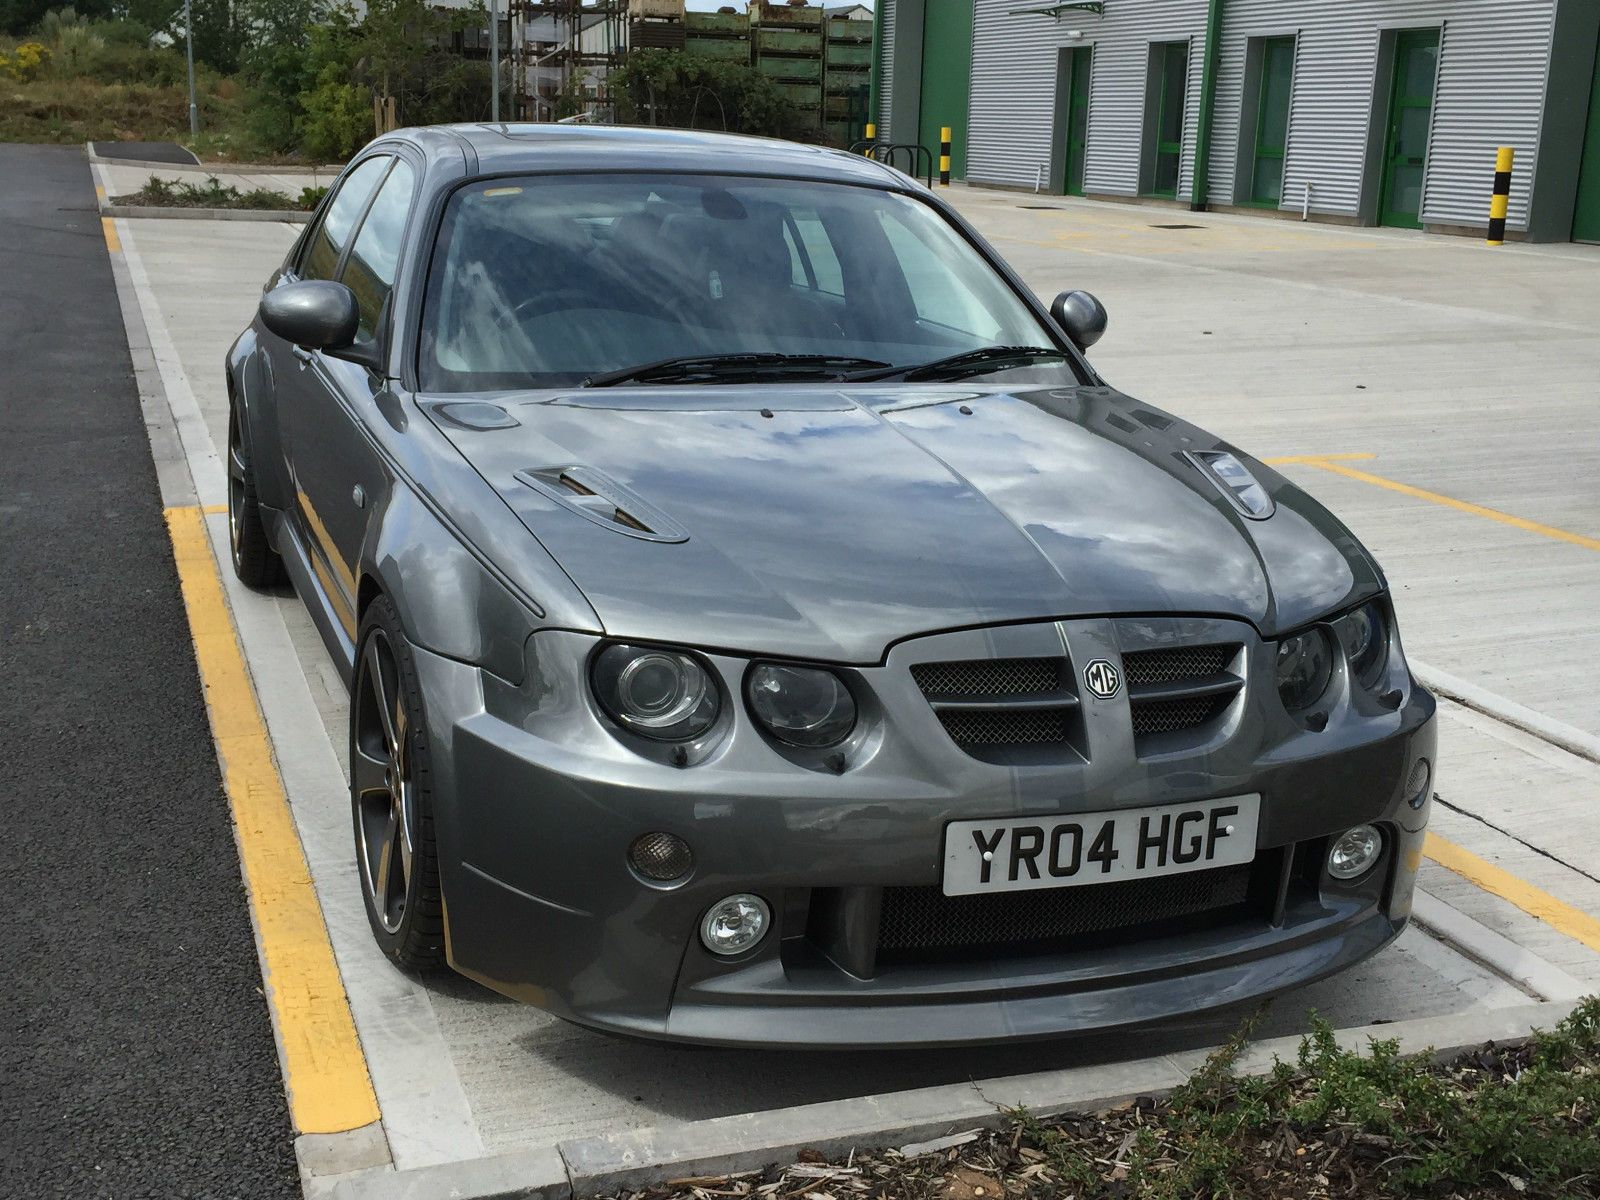 mg zt se 260 v8 x power grey 2004 mustang not rover 75 project mustang gray and cars. Black Bedroom Furniture Sets. Home Design Ideas